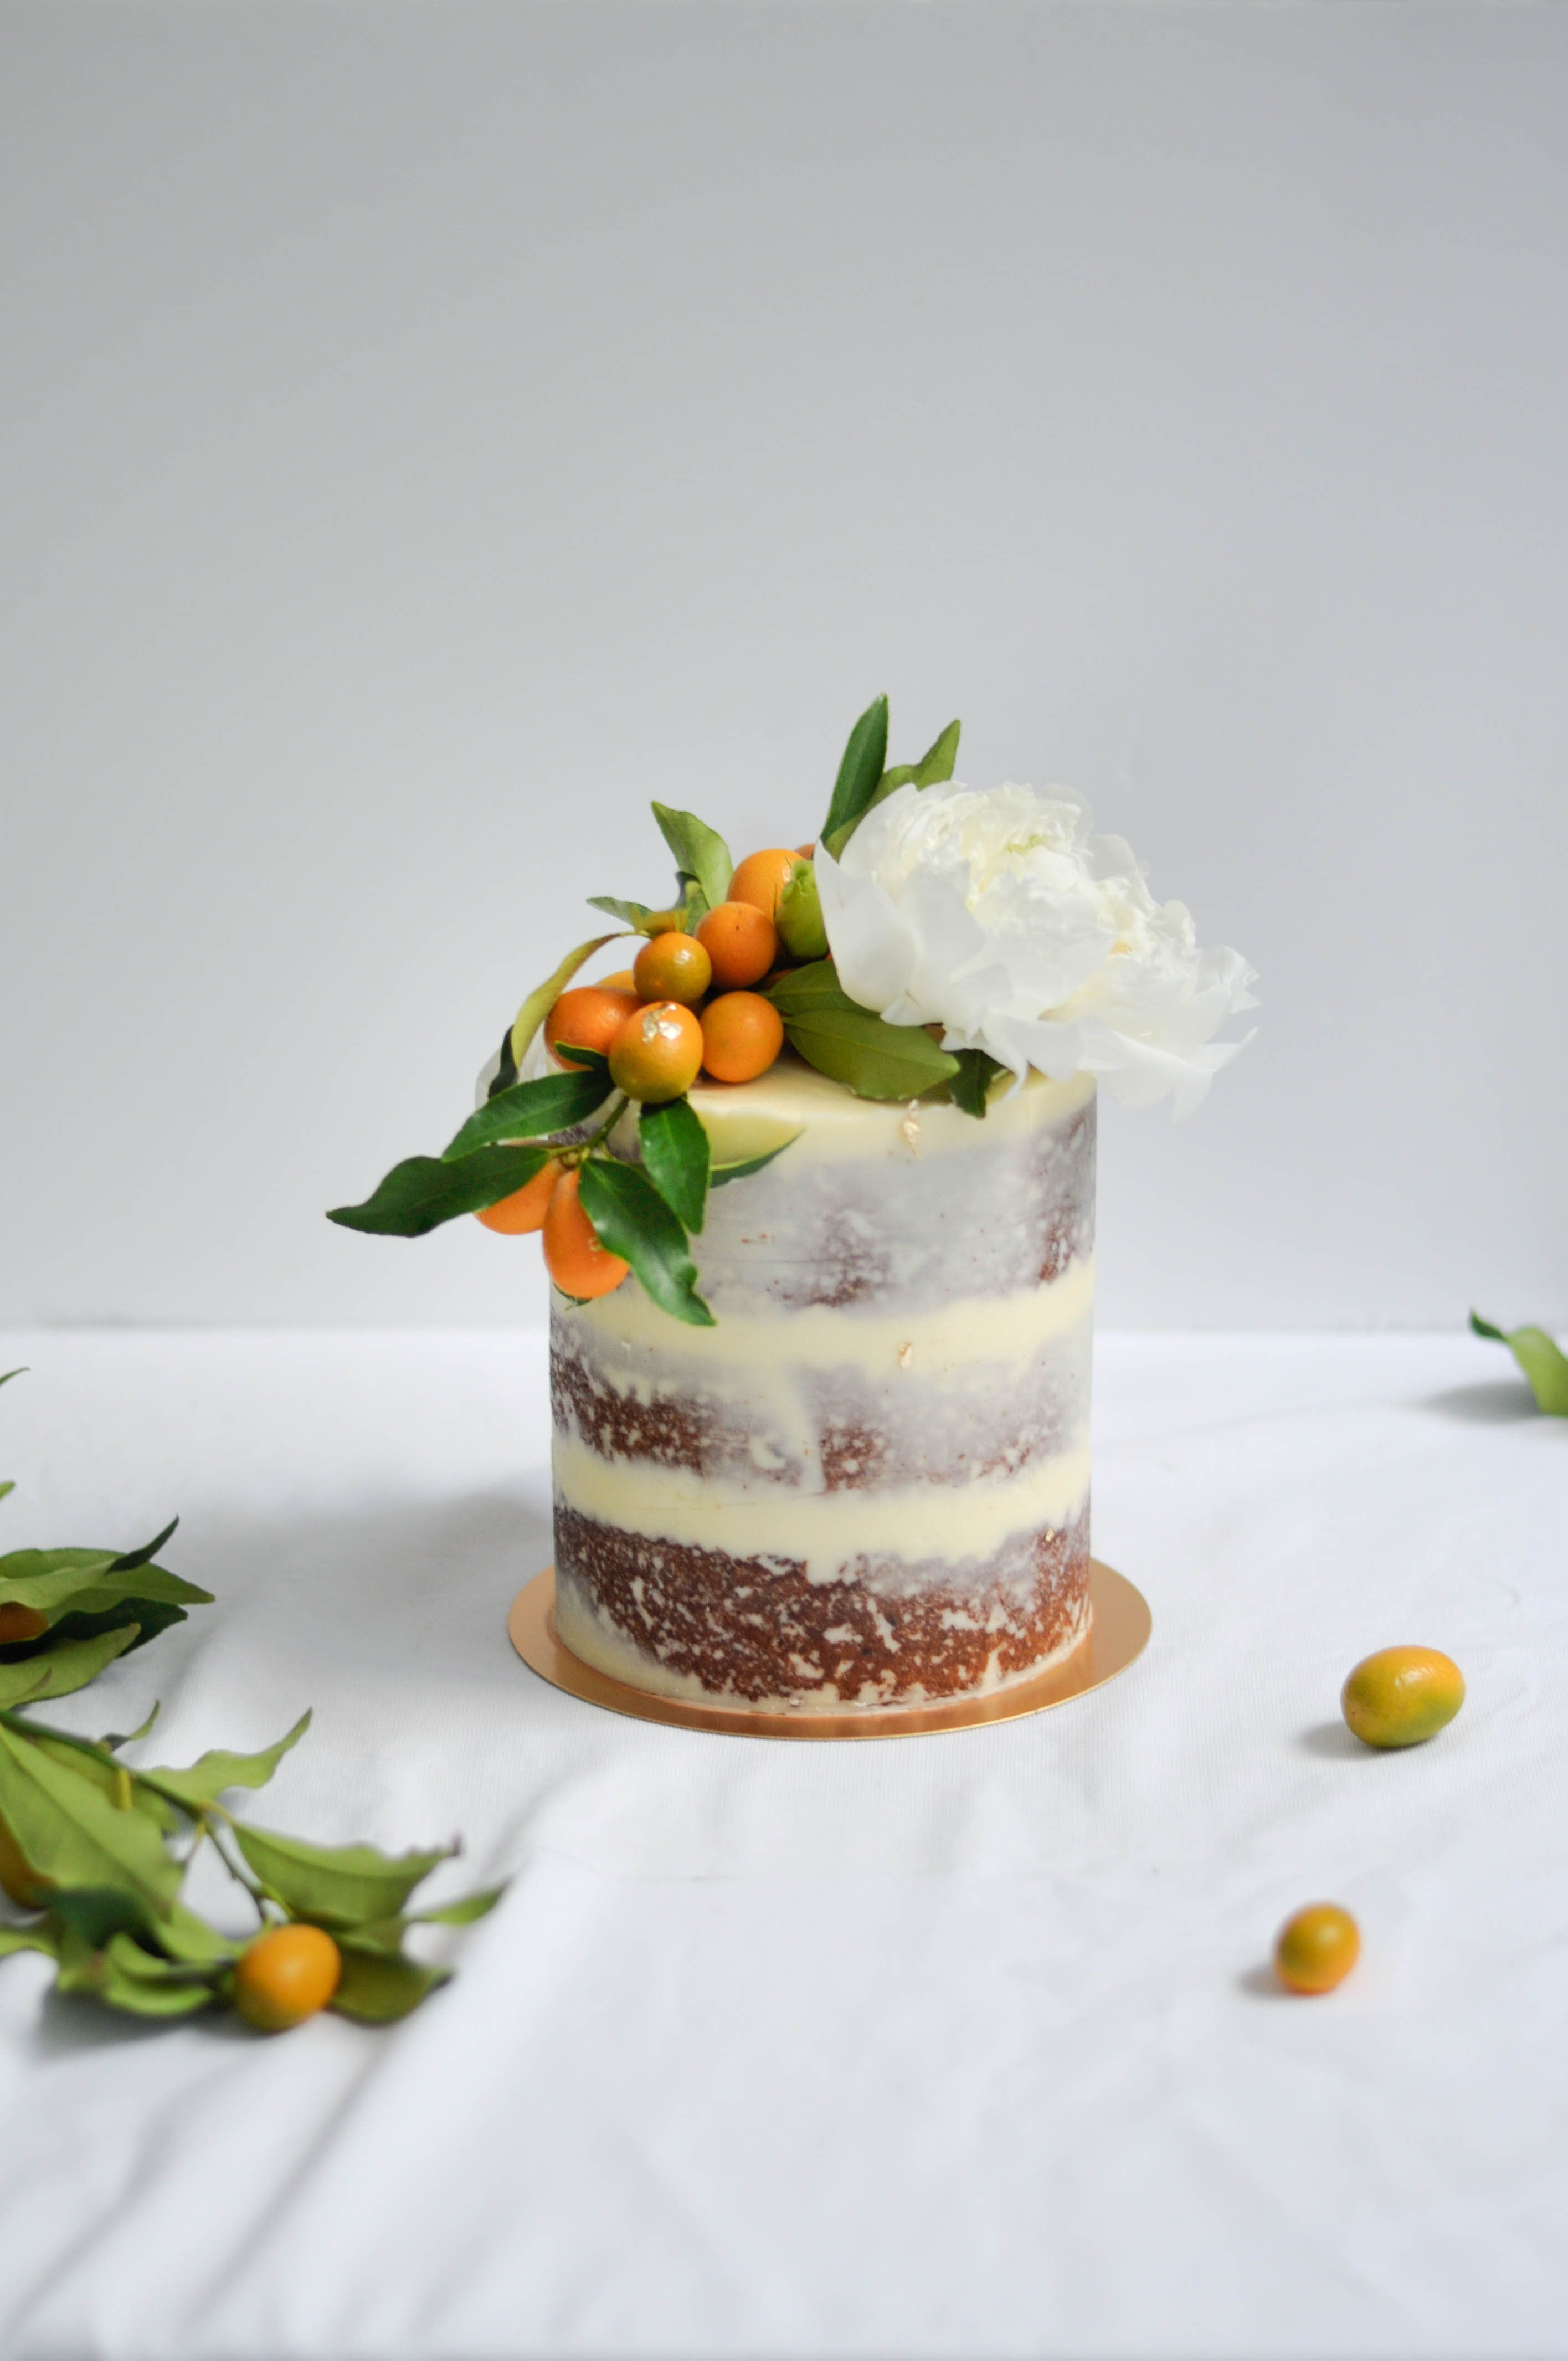 Kumquat and Peony semi-naked gluten-free spiced pistachio carrot cake by LionHeart